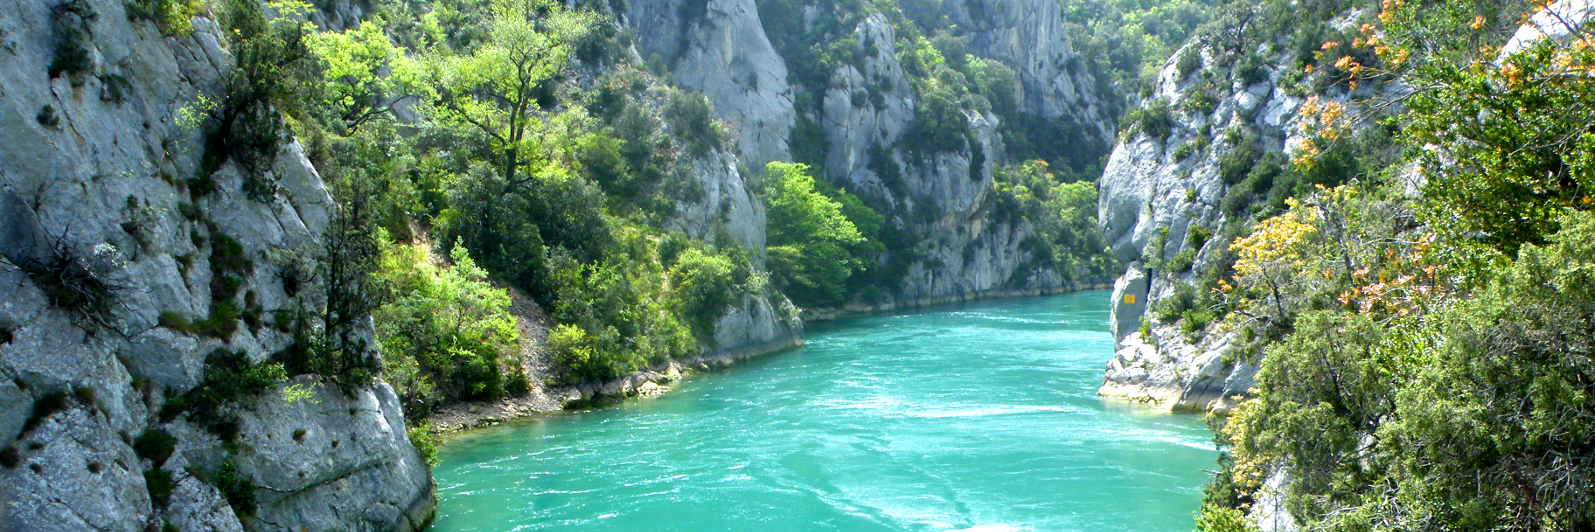 location vacances gorges du verdon